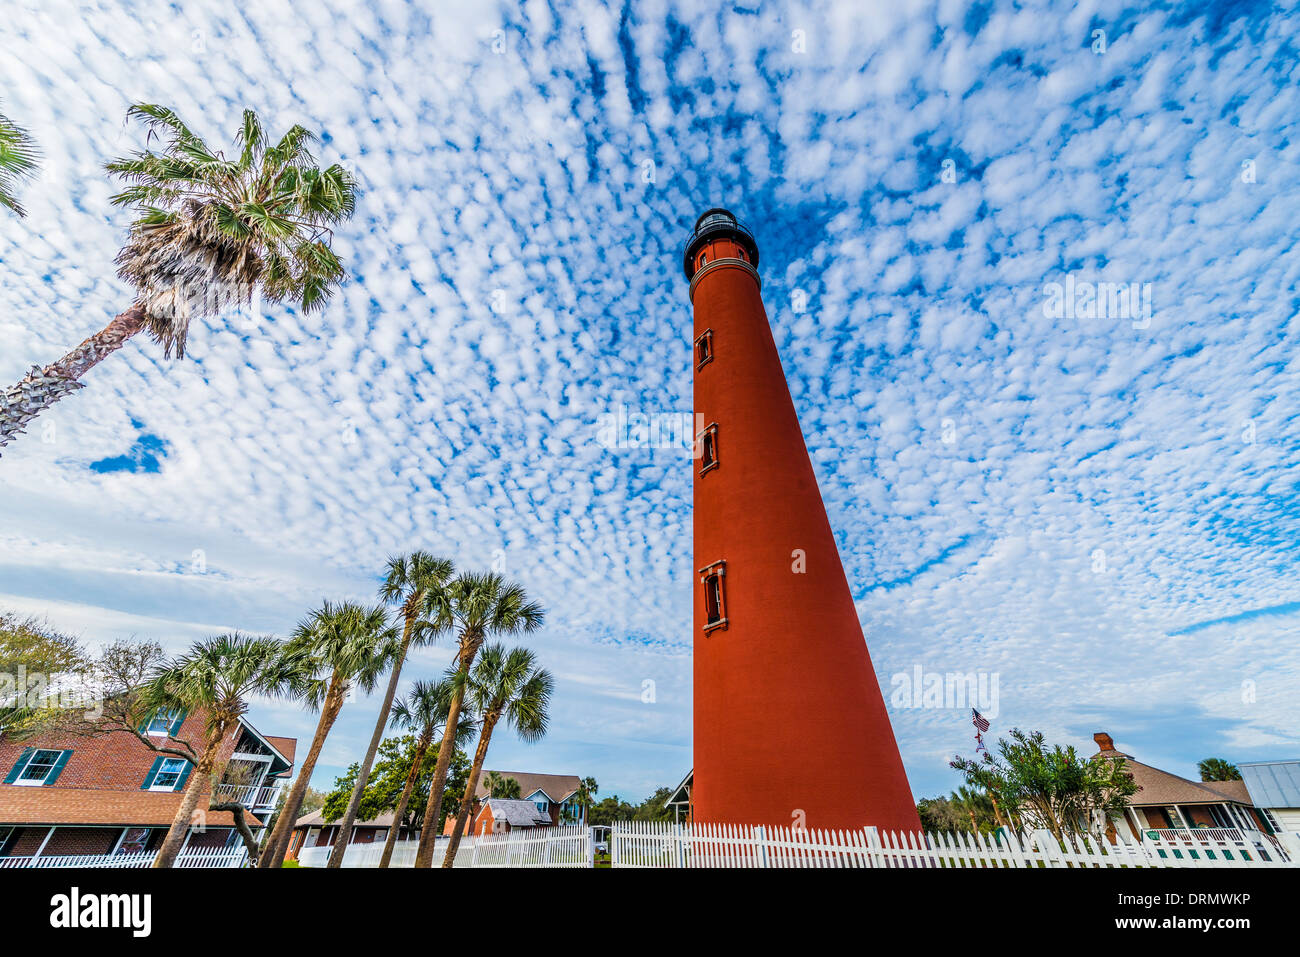 Ponce Inlet Leuchtturm Florida Lighthouse Point Park Buttermilch Wolken entlang Atlantik gebaut im Jahr 1867 höchste Leuchtturm Stockbild